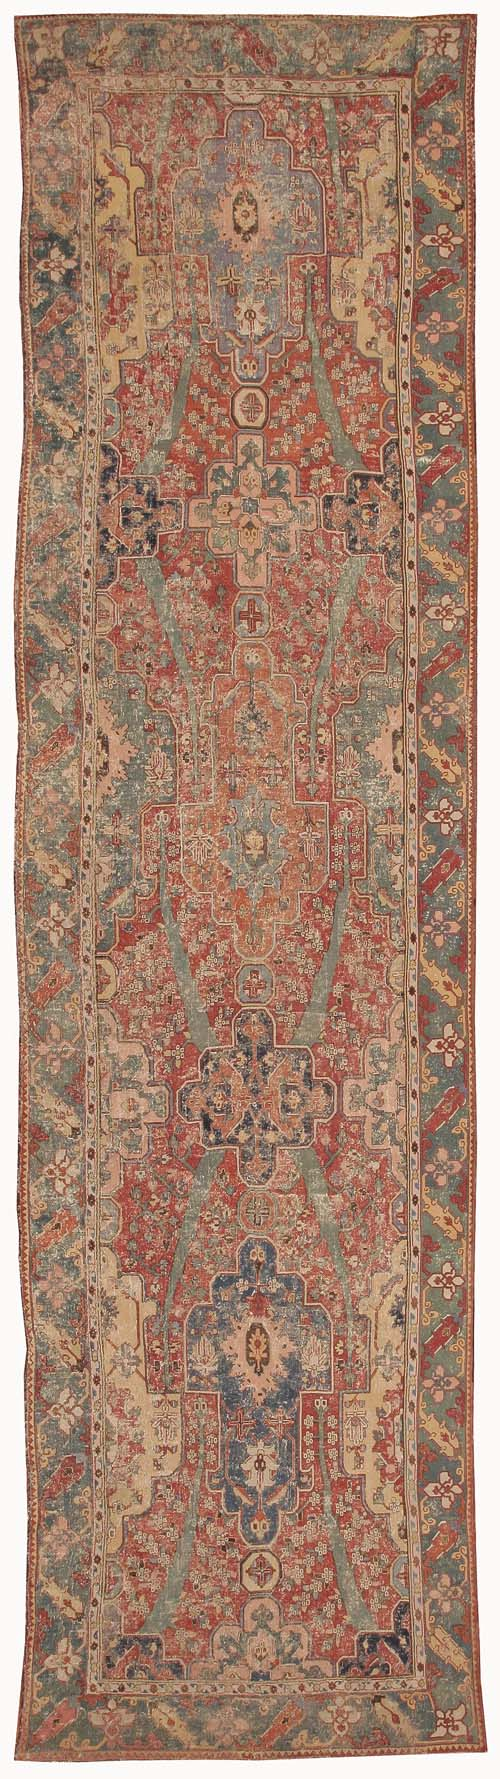 Antique Khorassan Persian Rug 3289 Luxury Rugs and Fine Antique Carpets